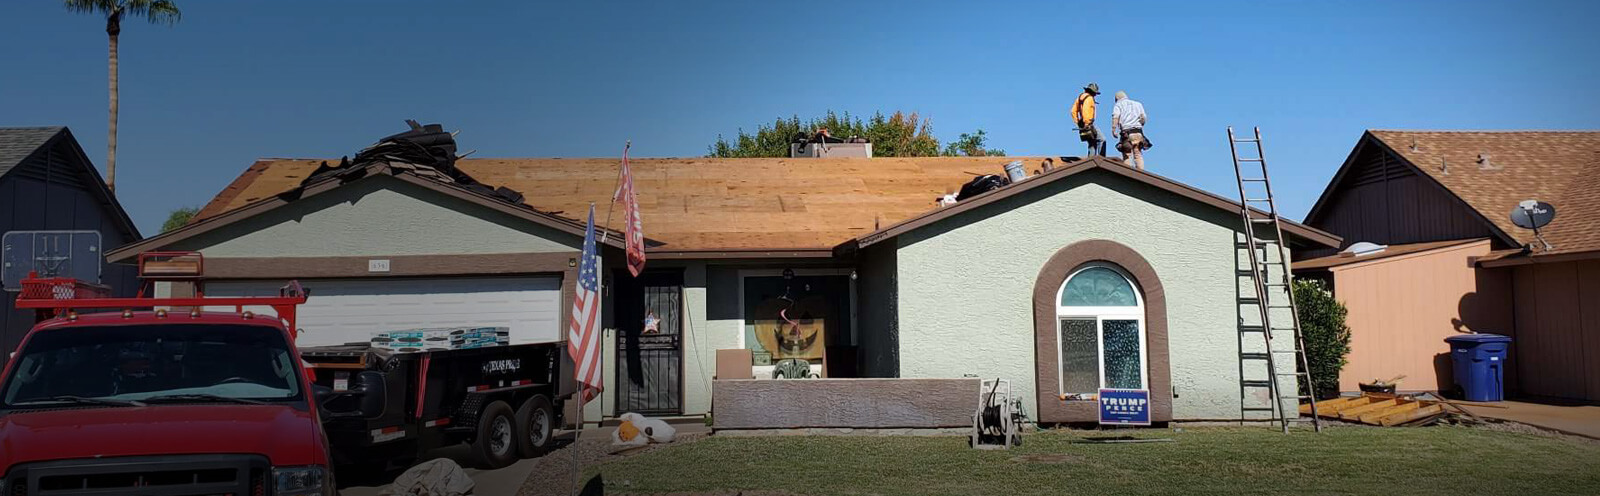 Roofing Contractor Serving Phoenix and All Arizona